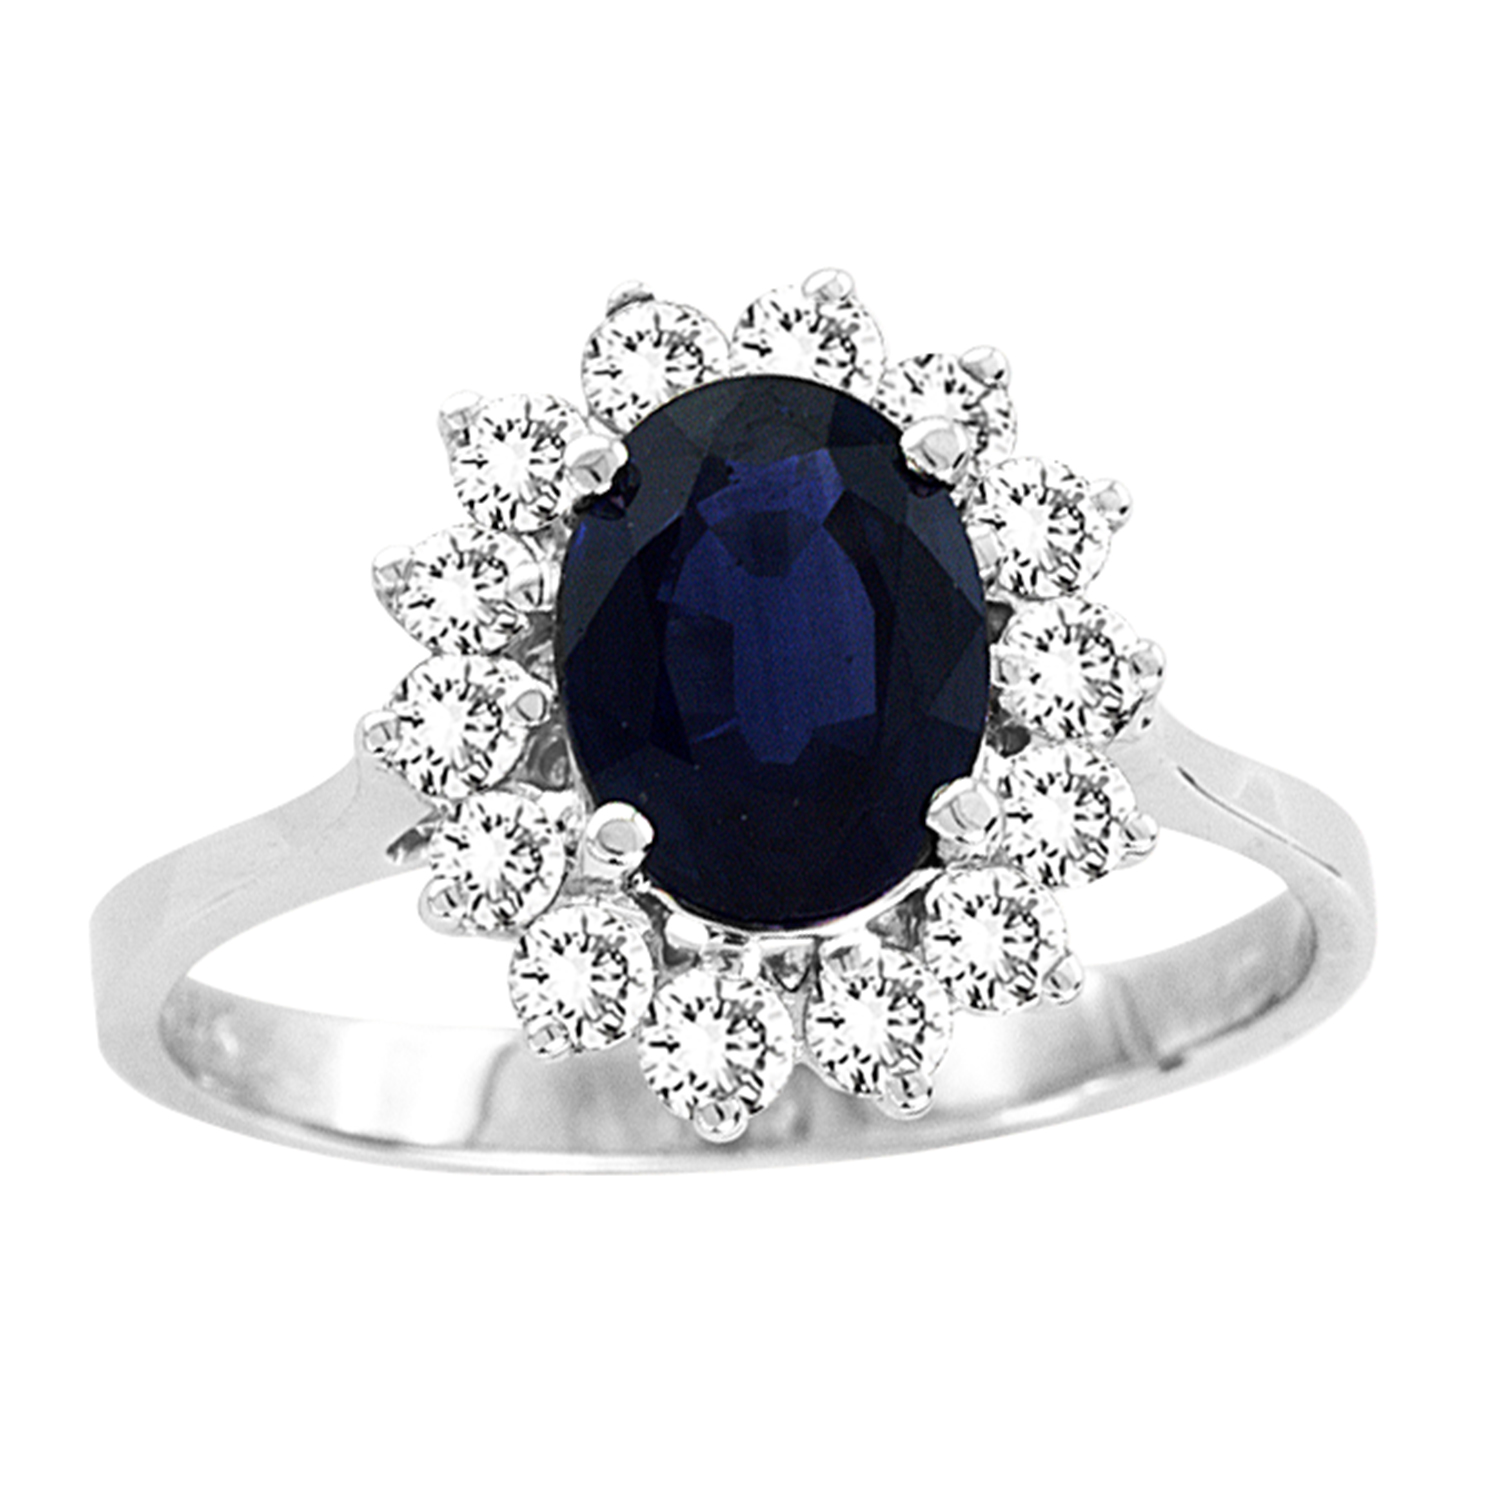 View 1.75ct tw Natural Sapphire & Diamond Ring 8x6mm 1.35 Carat Oval Sapphire Center Stone 14k Gold Royal Collection